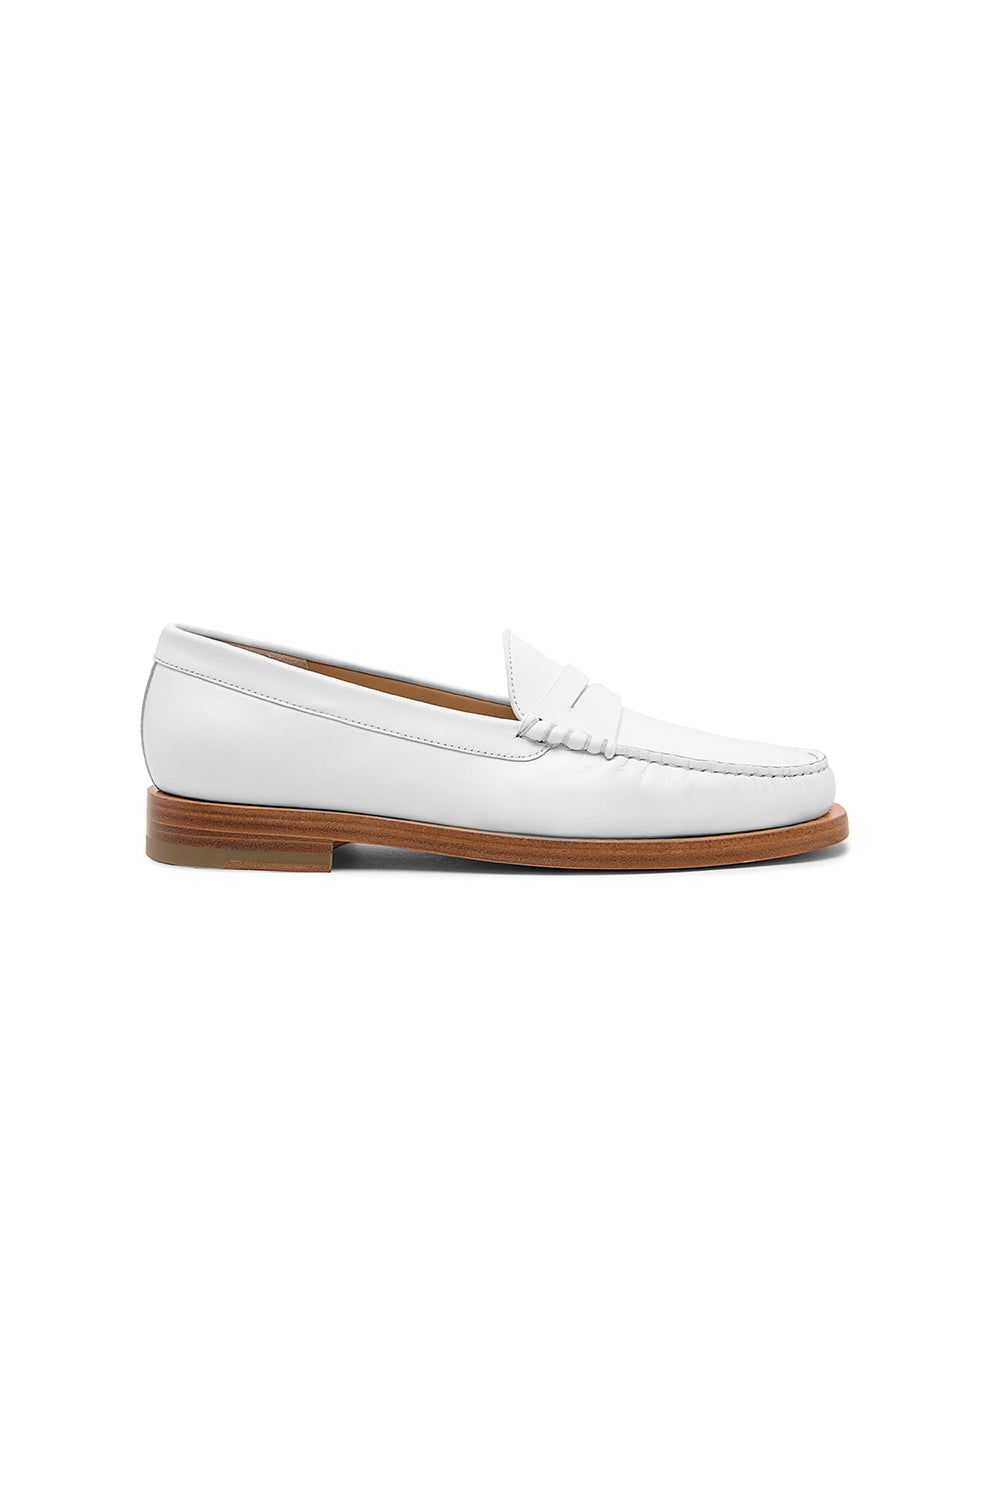 ANNA leather loafers - HAZY